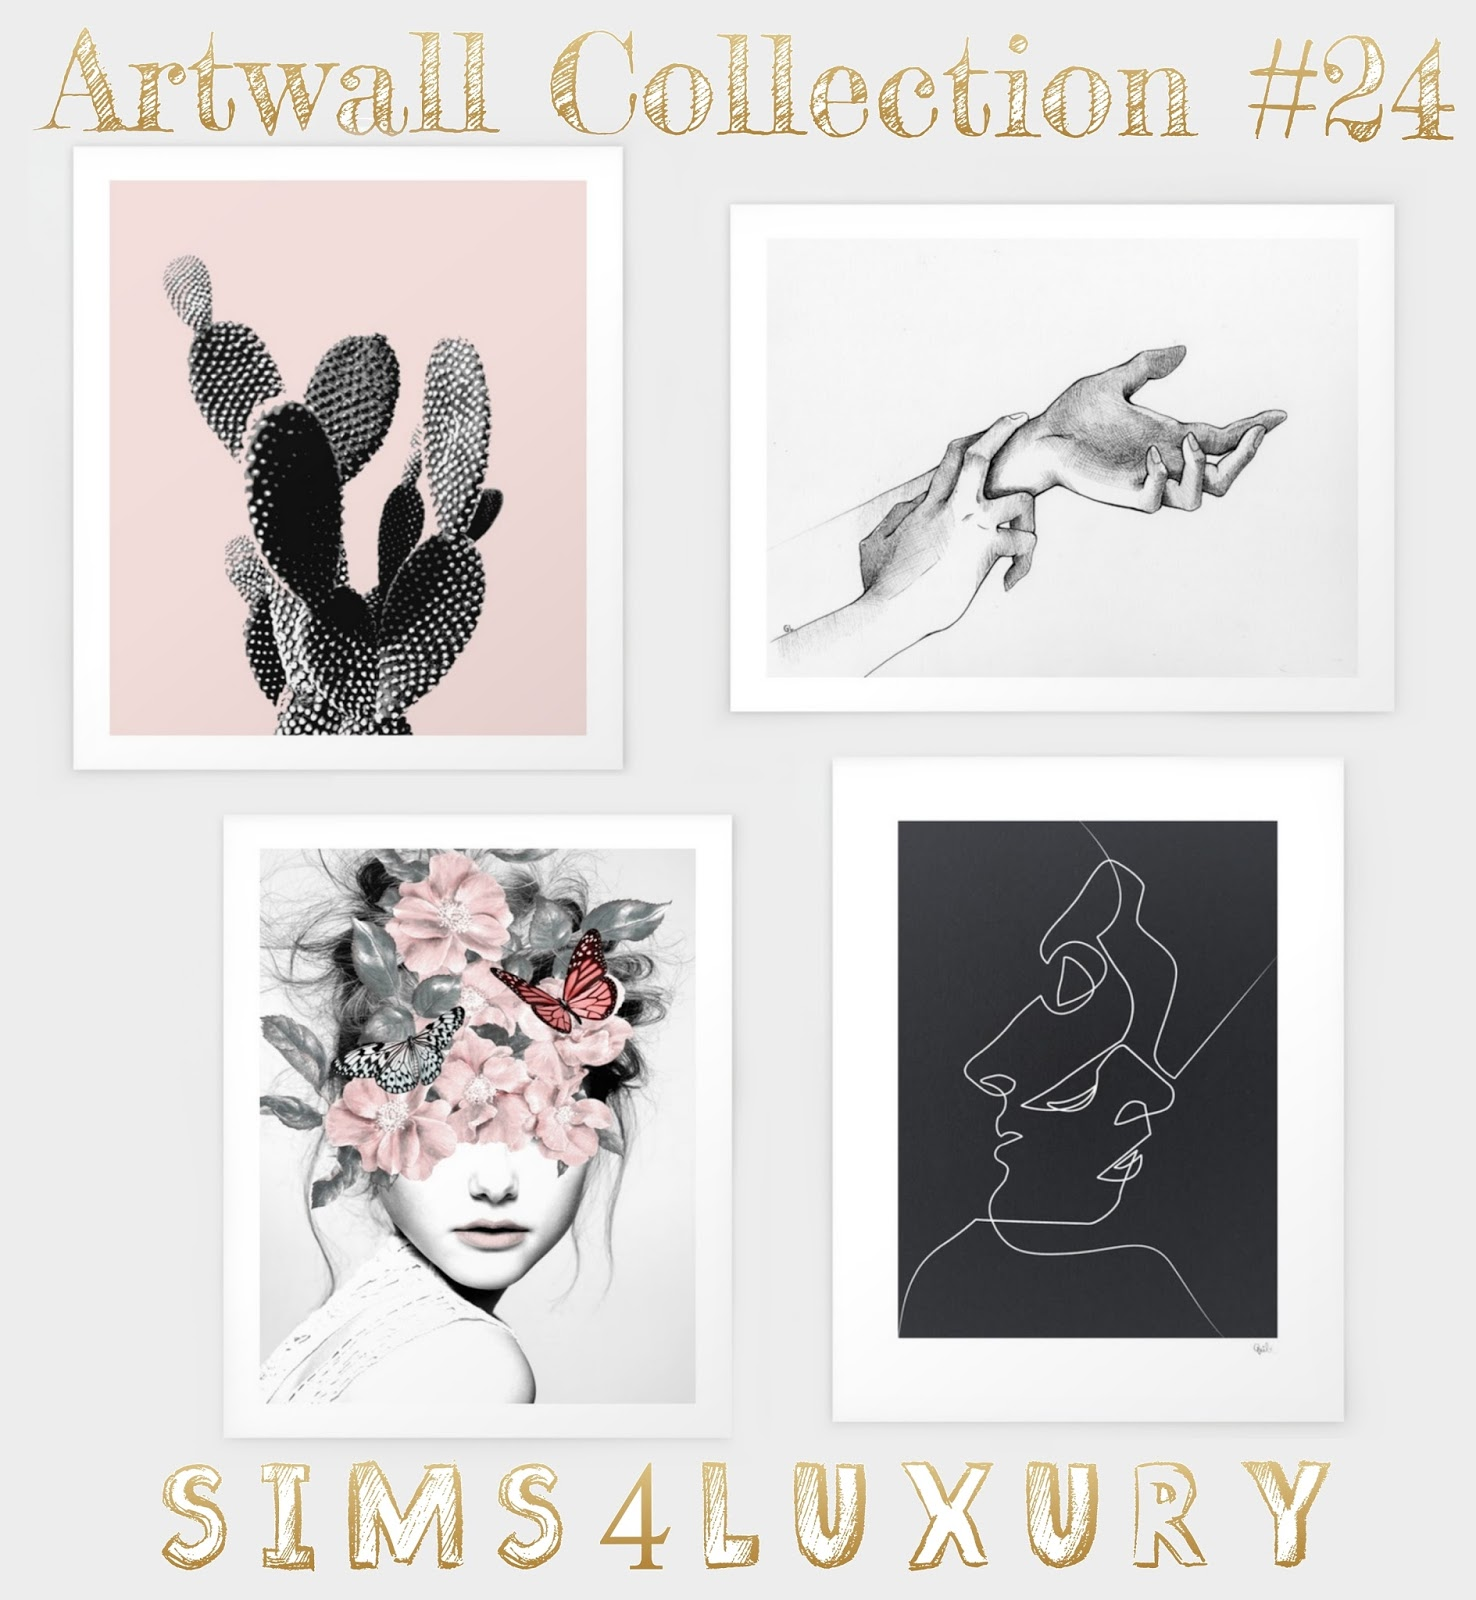 Artwall Collection #24 by Sims4luxury